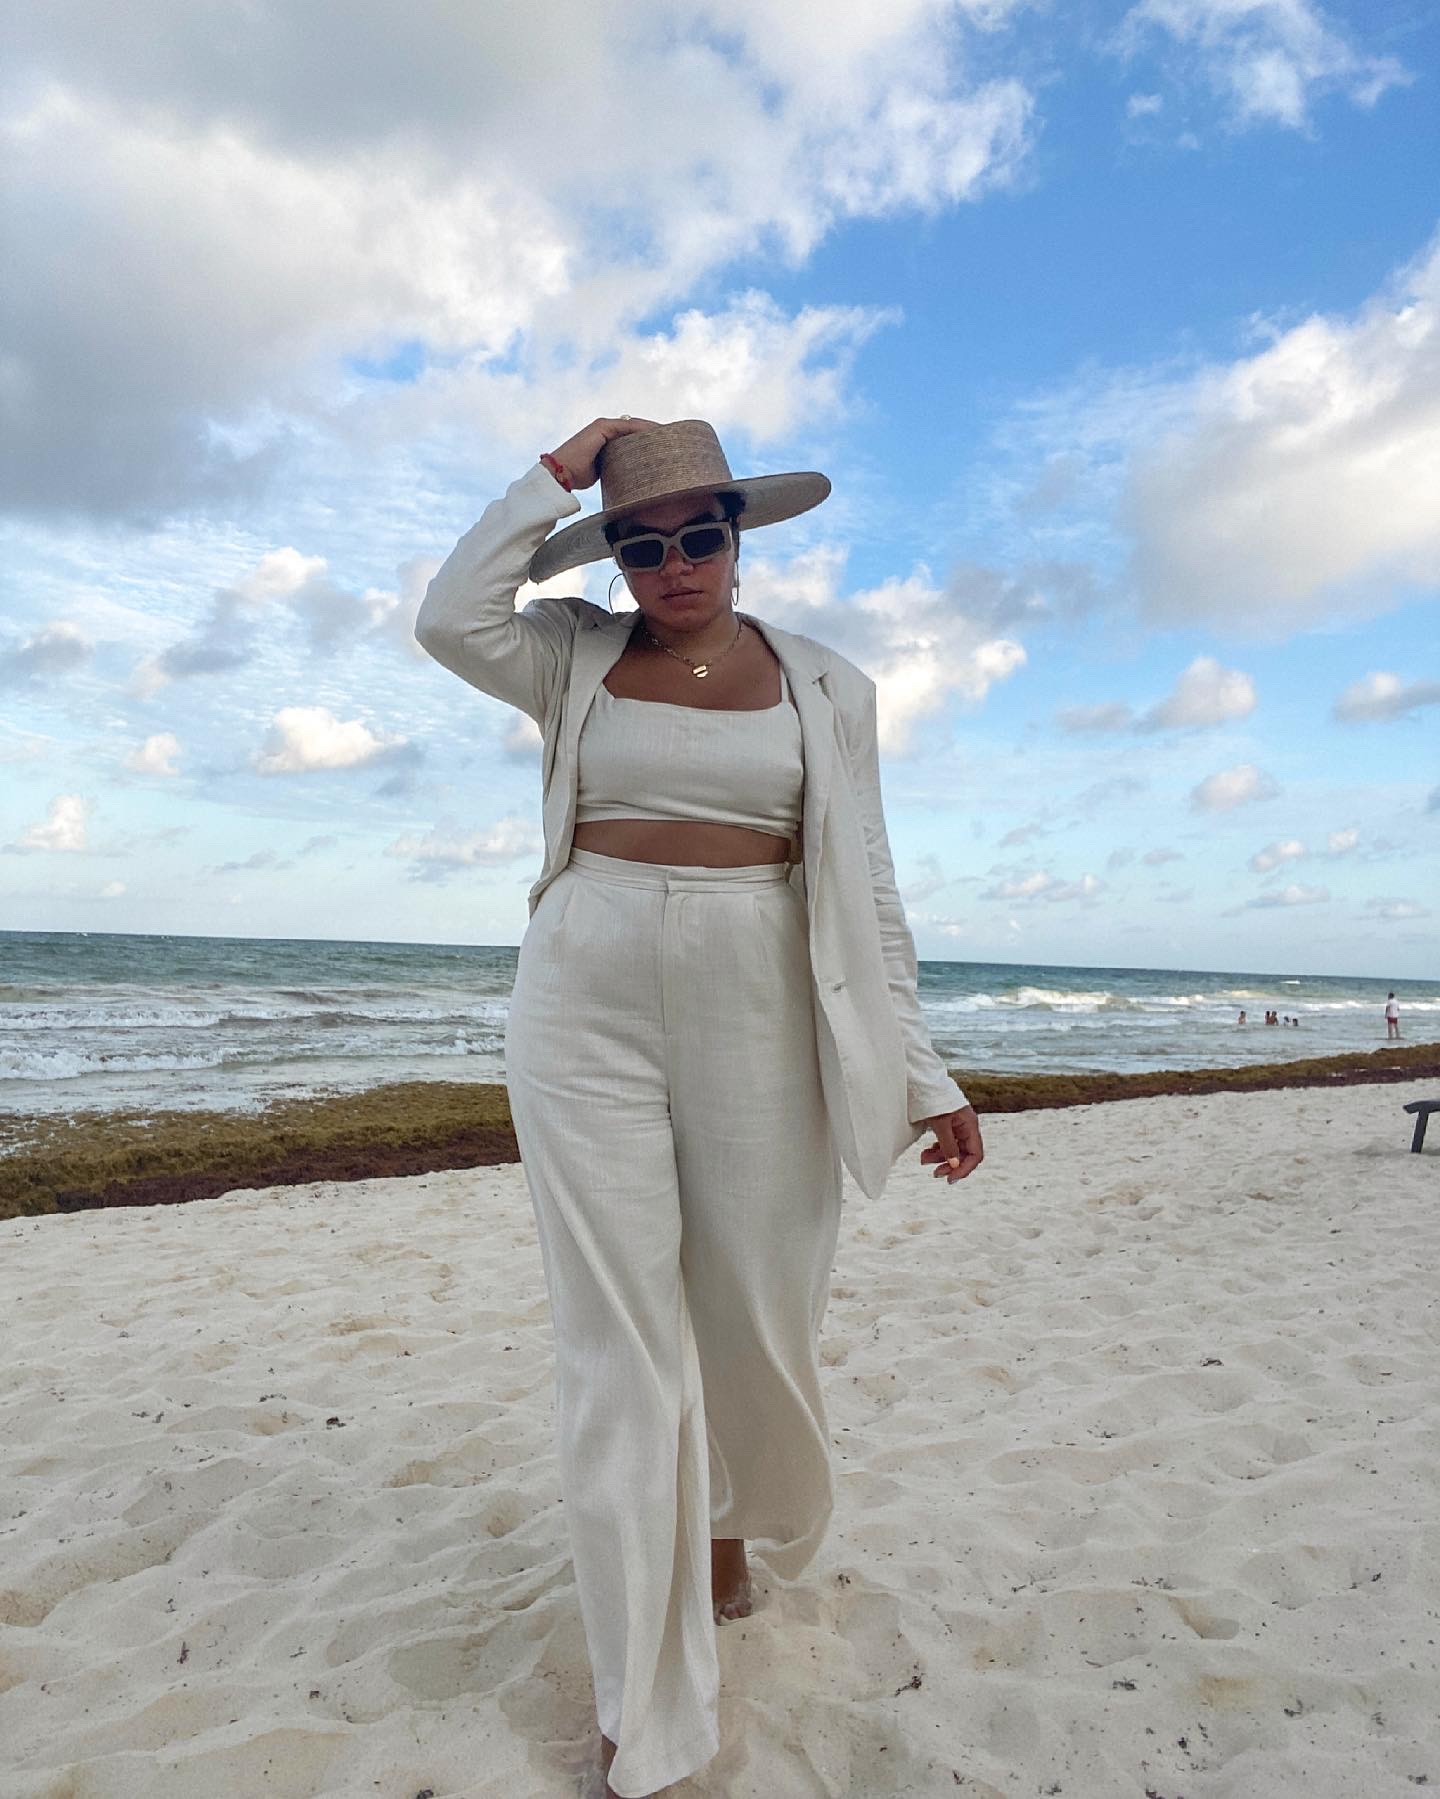 Outfits I Wore on my Solo Trip to Tulum